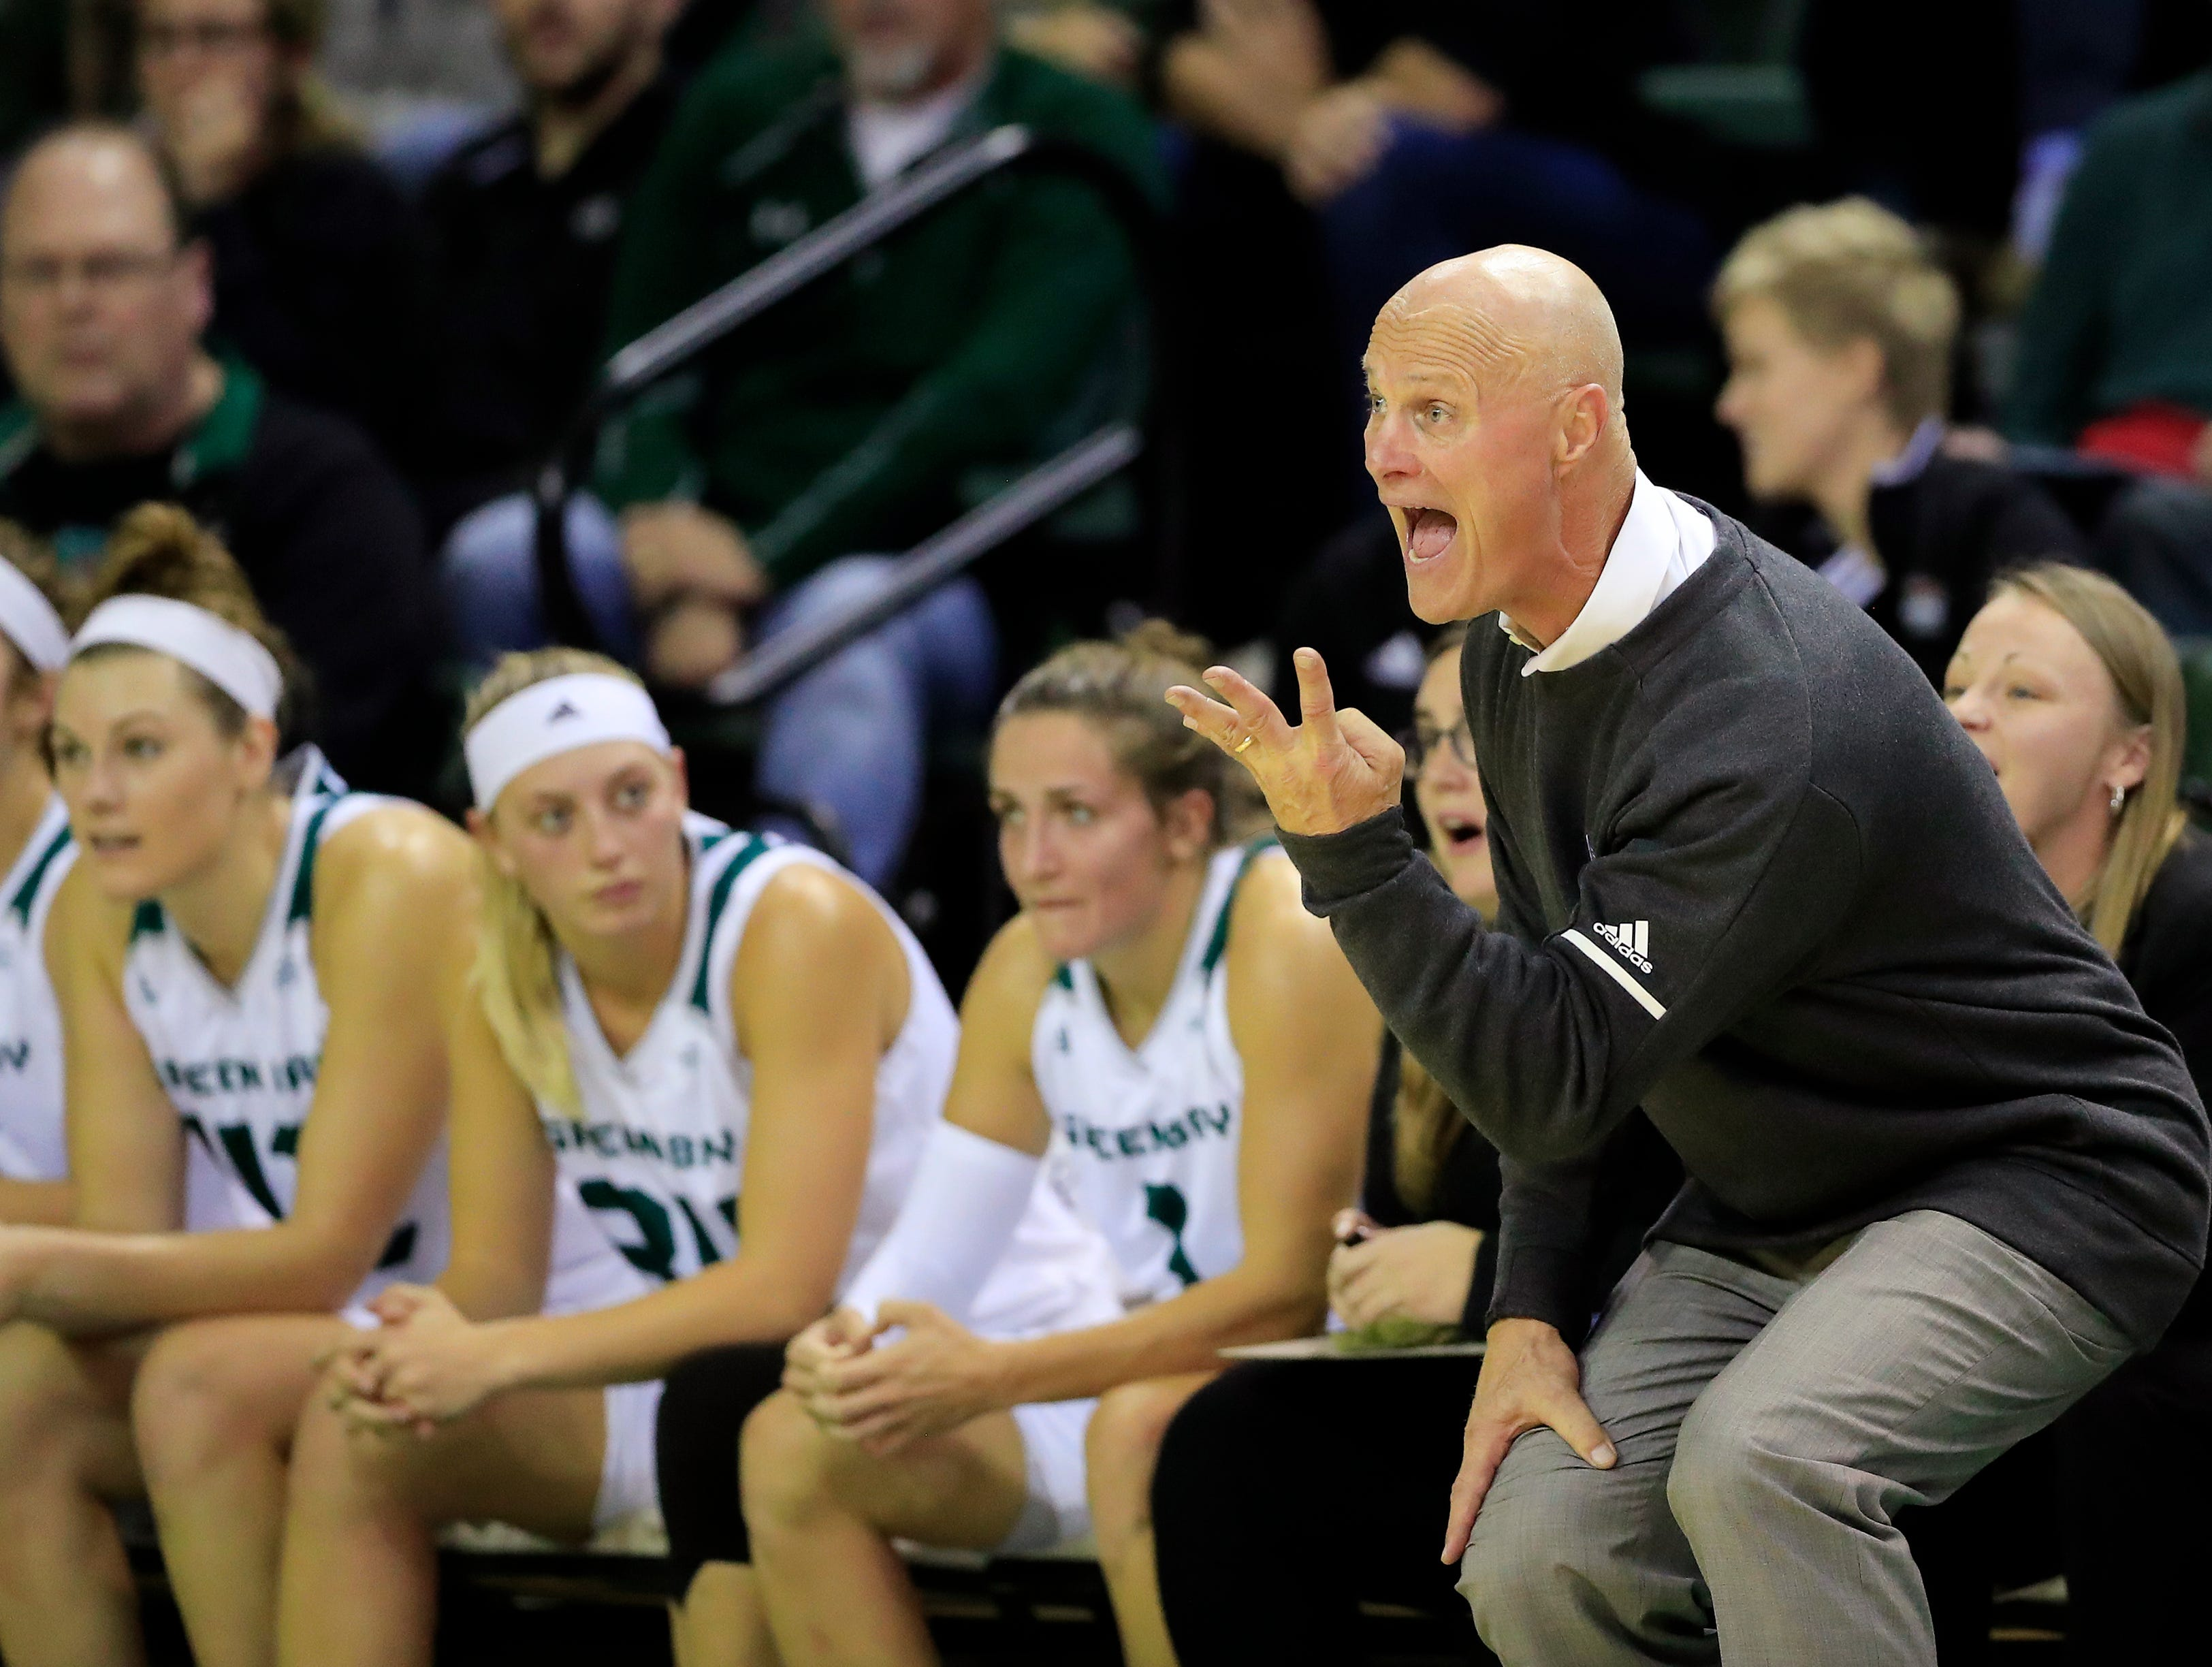 Green Bay Phoenix head coach Kevin Borseth shouts instructions during a women's NCAA basketball game against the Northwestern Wildcats at the Kress Center on Tuesday, November 6, 2018 in Green Bay, Wis.